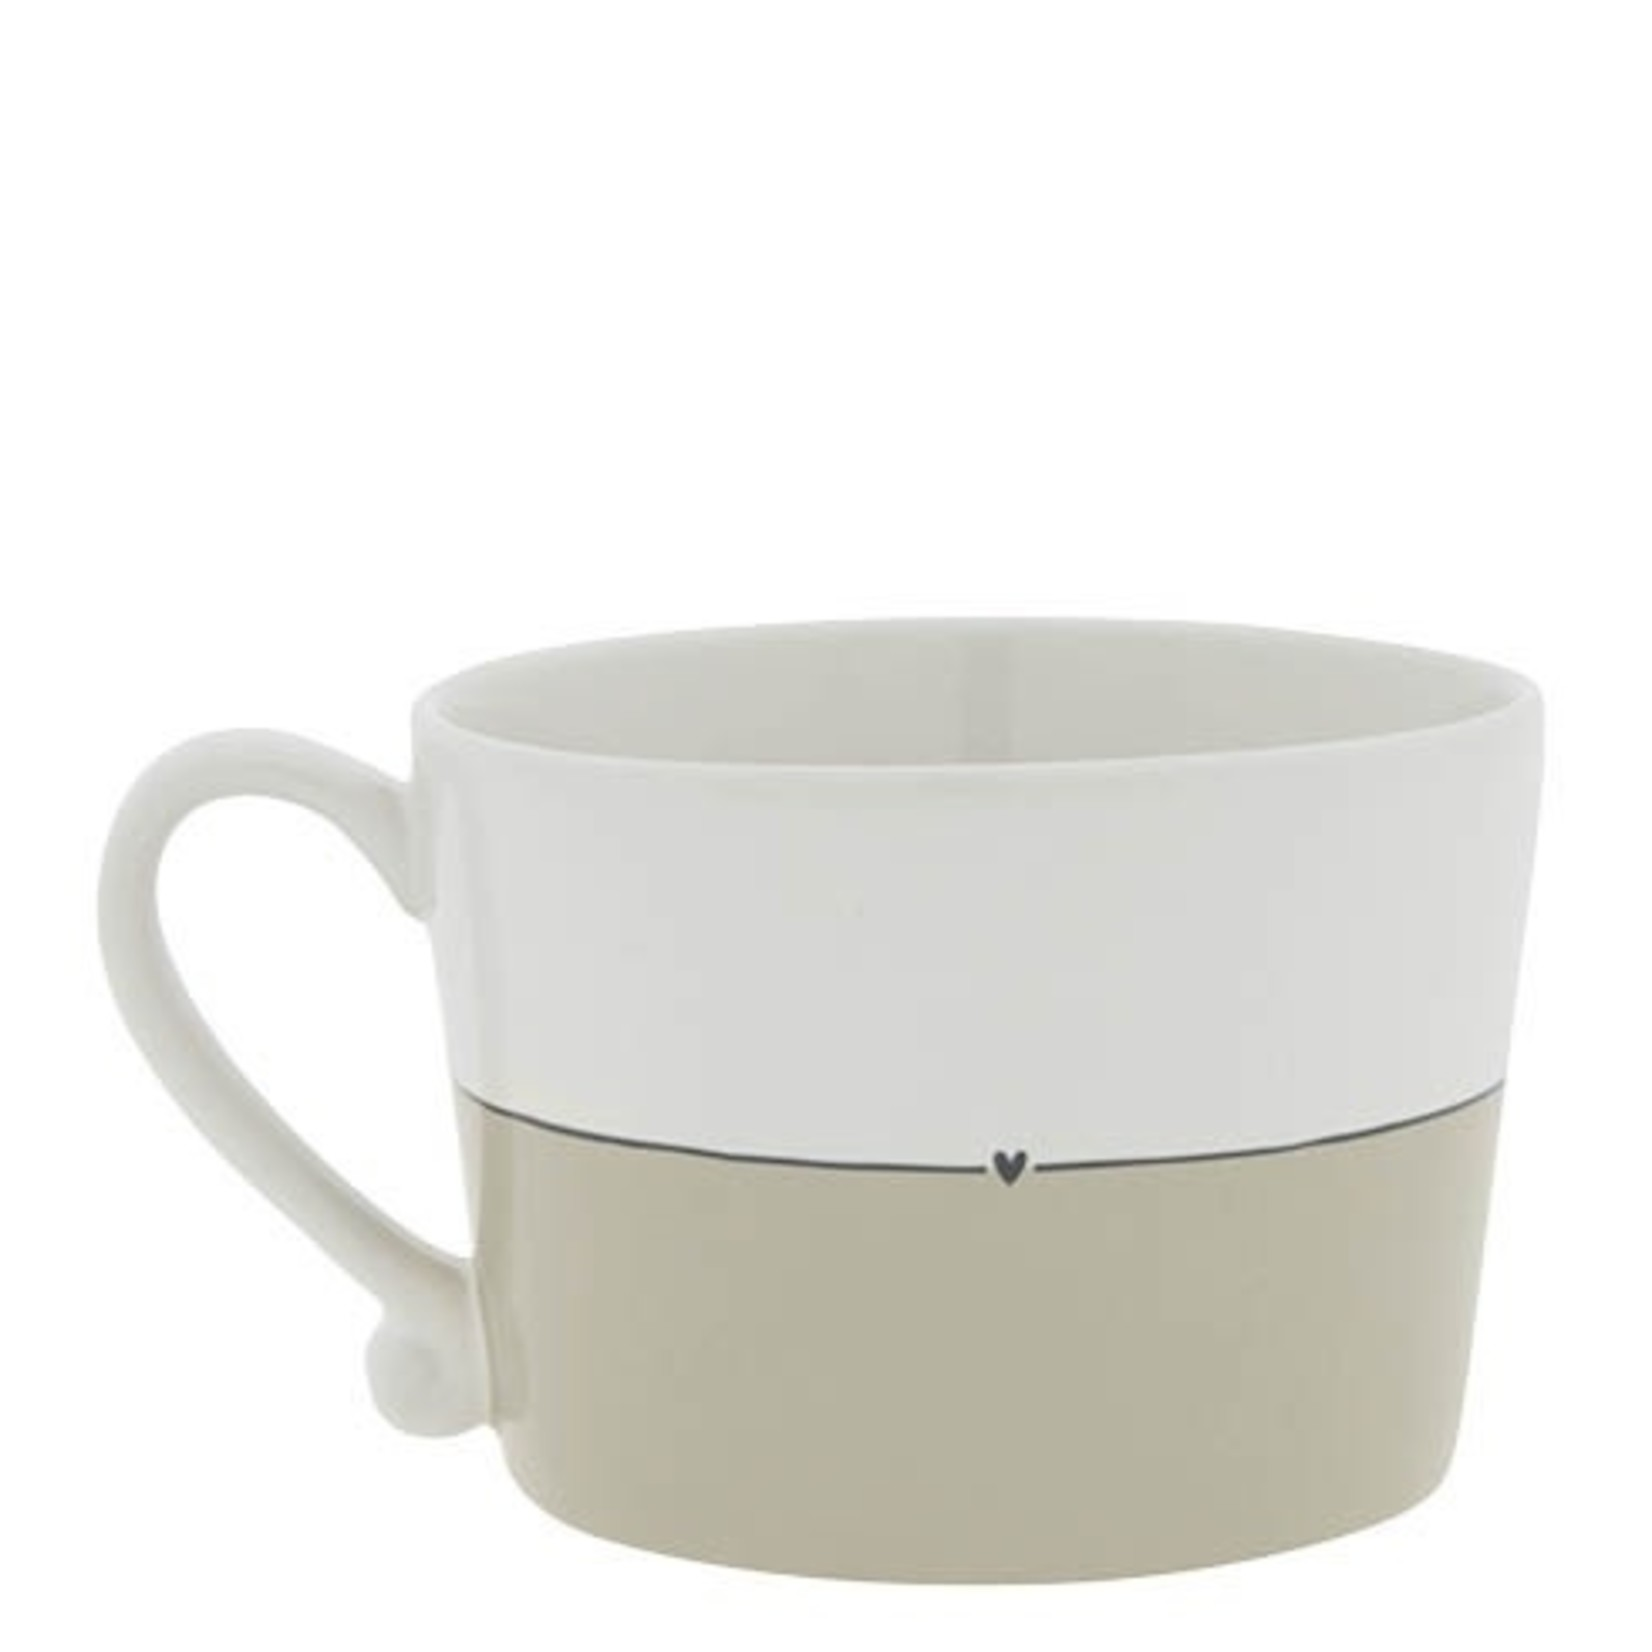 Bastion Collections Cup Beautiful Day white/titane/black 10x8x7 cm